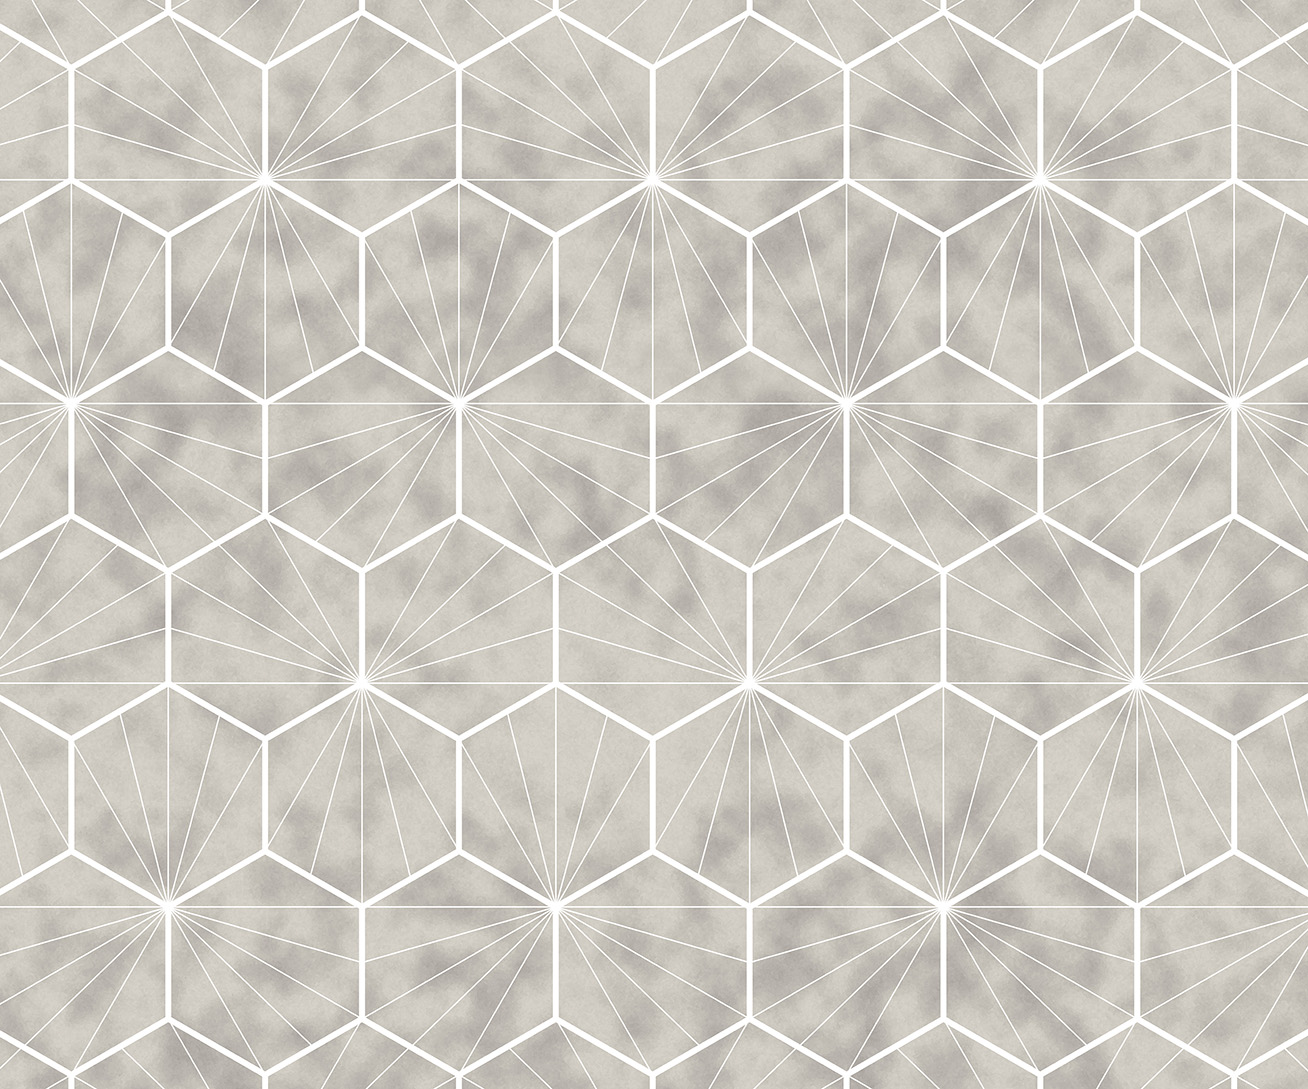 cr dence carreaux ciment carreaux de ciment hexagonal taupe c. Black Bedroom Furniture Sets. Home Design Ideas